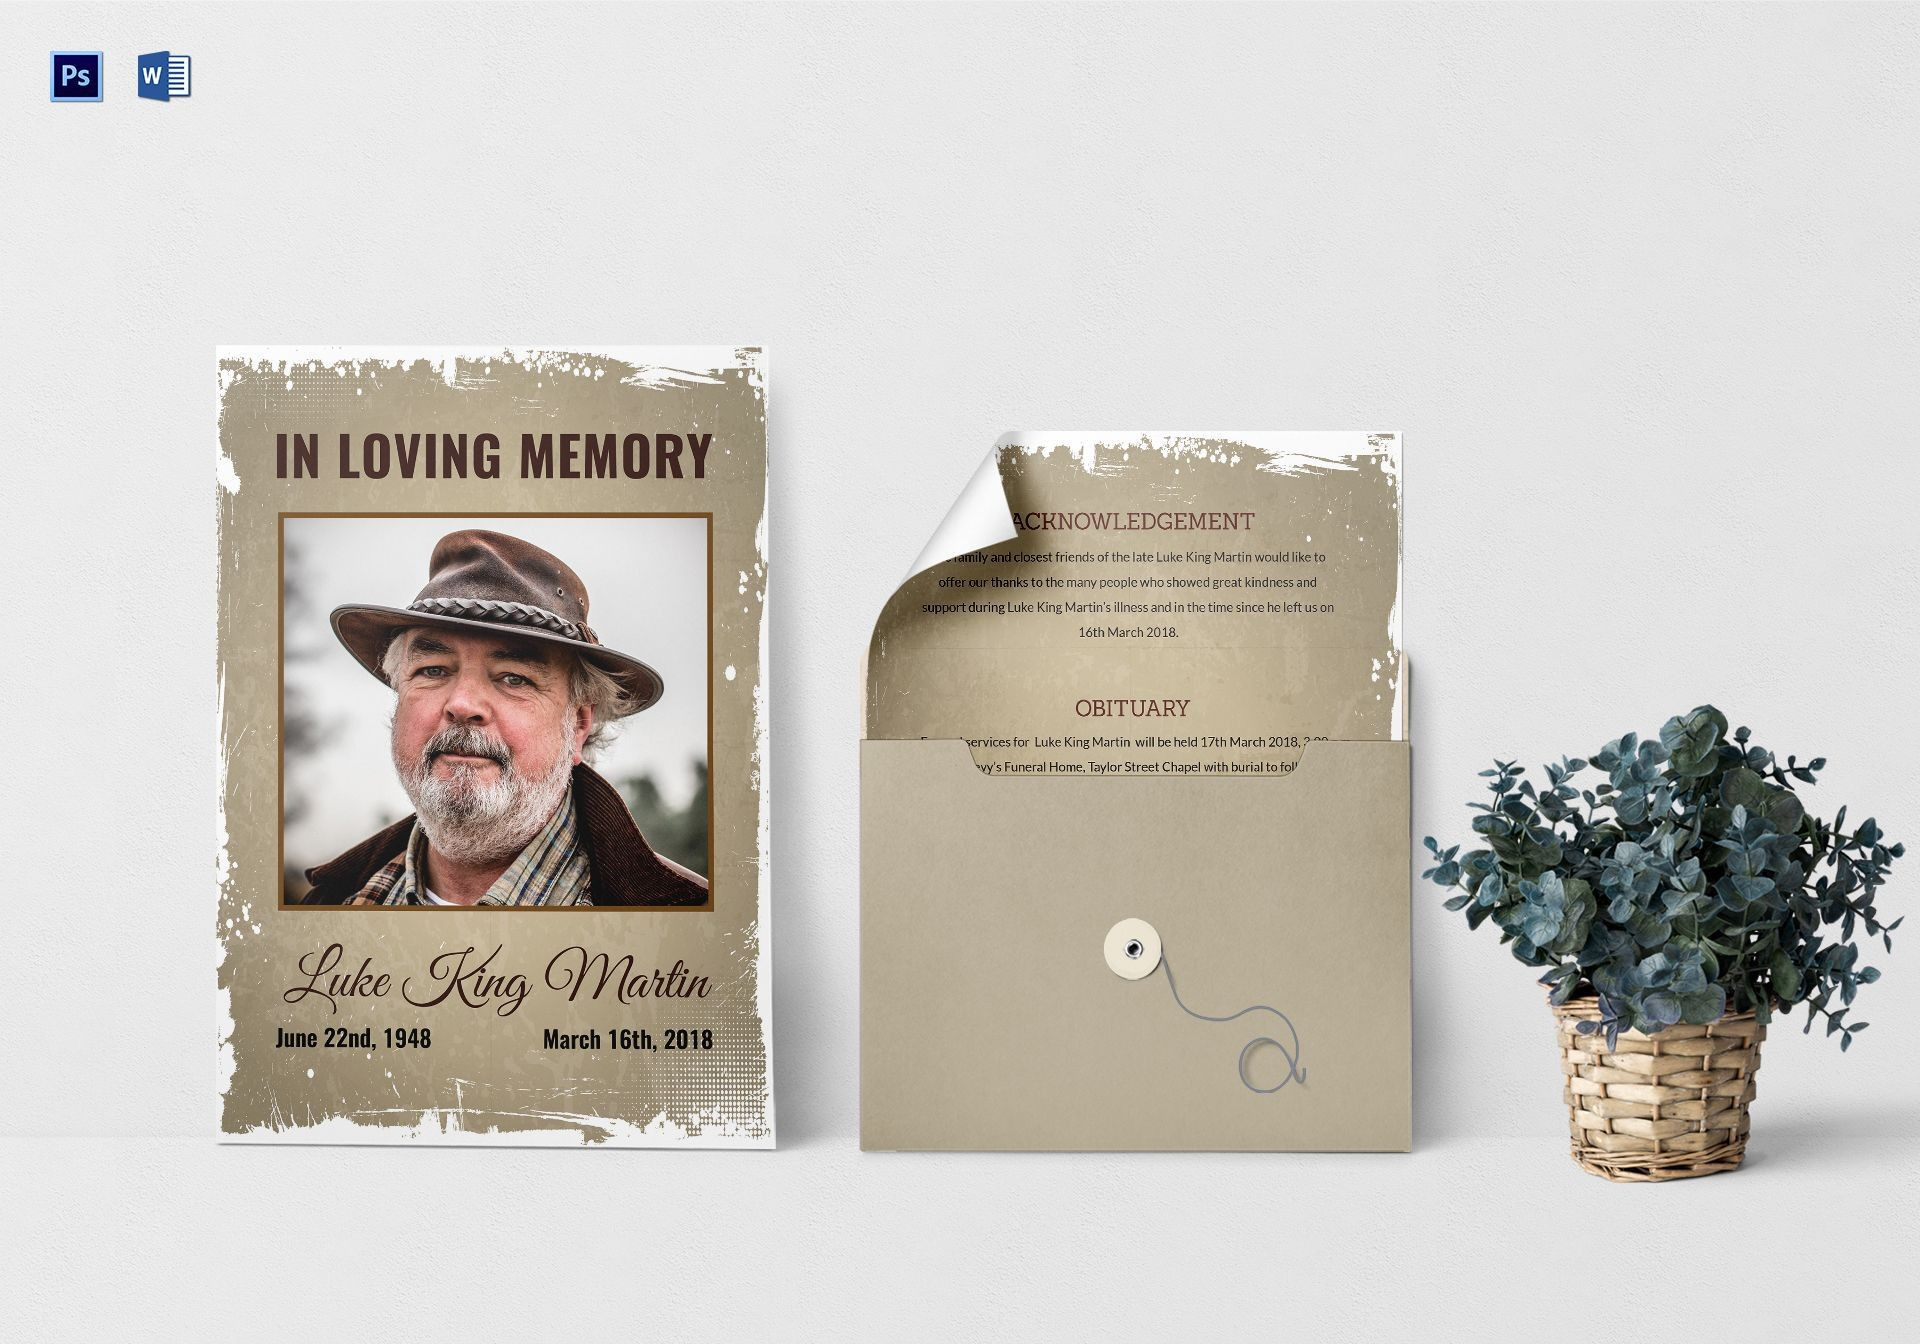 008 Wondrou In Loving Memory Template Word Highest Clarity 1920